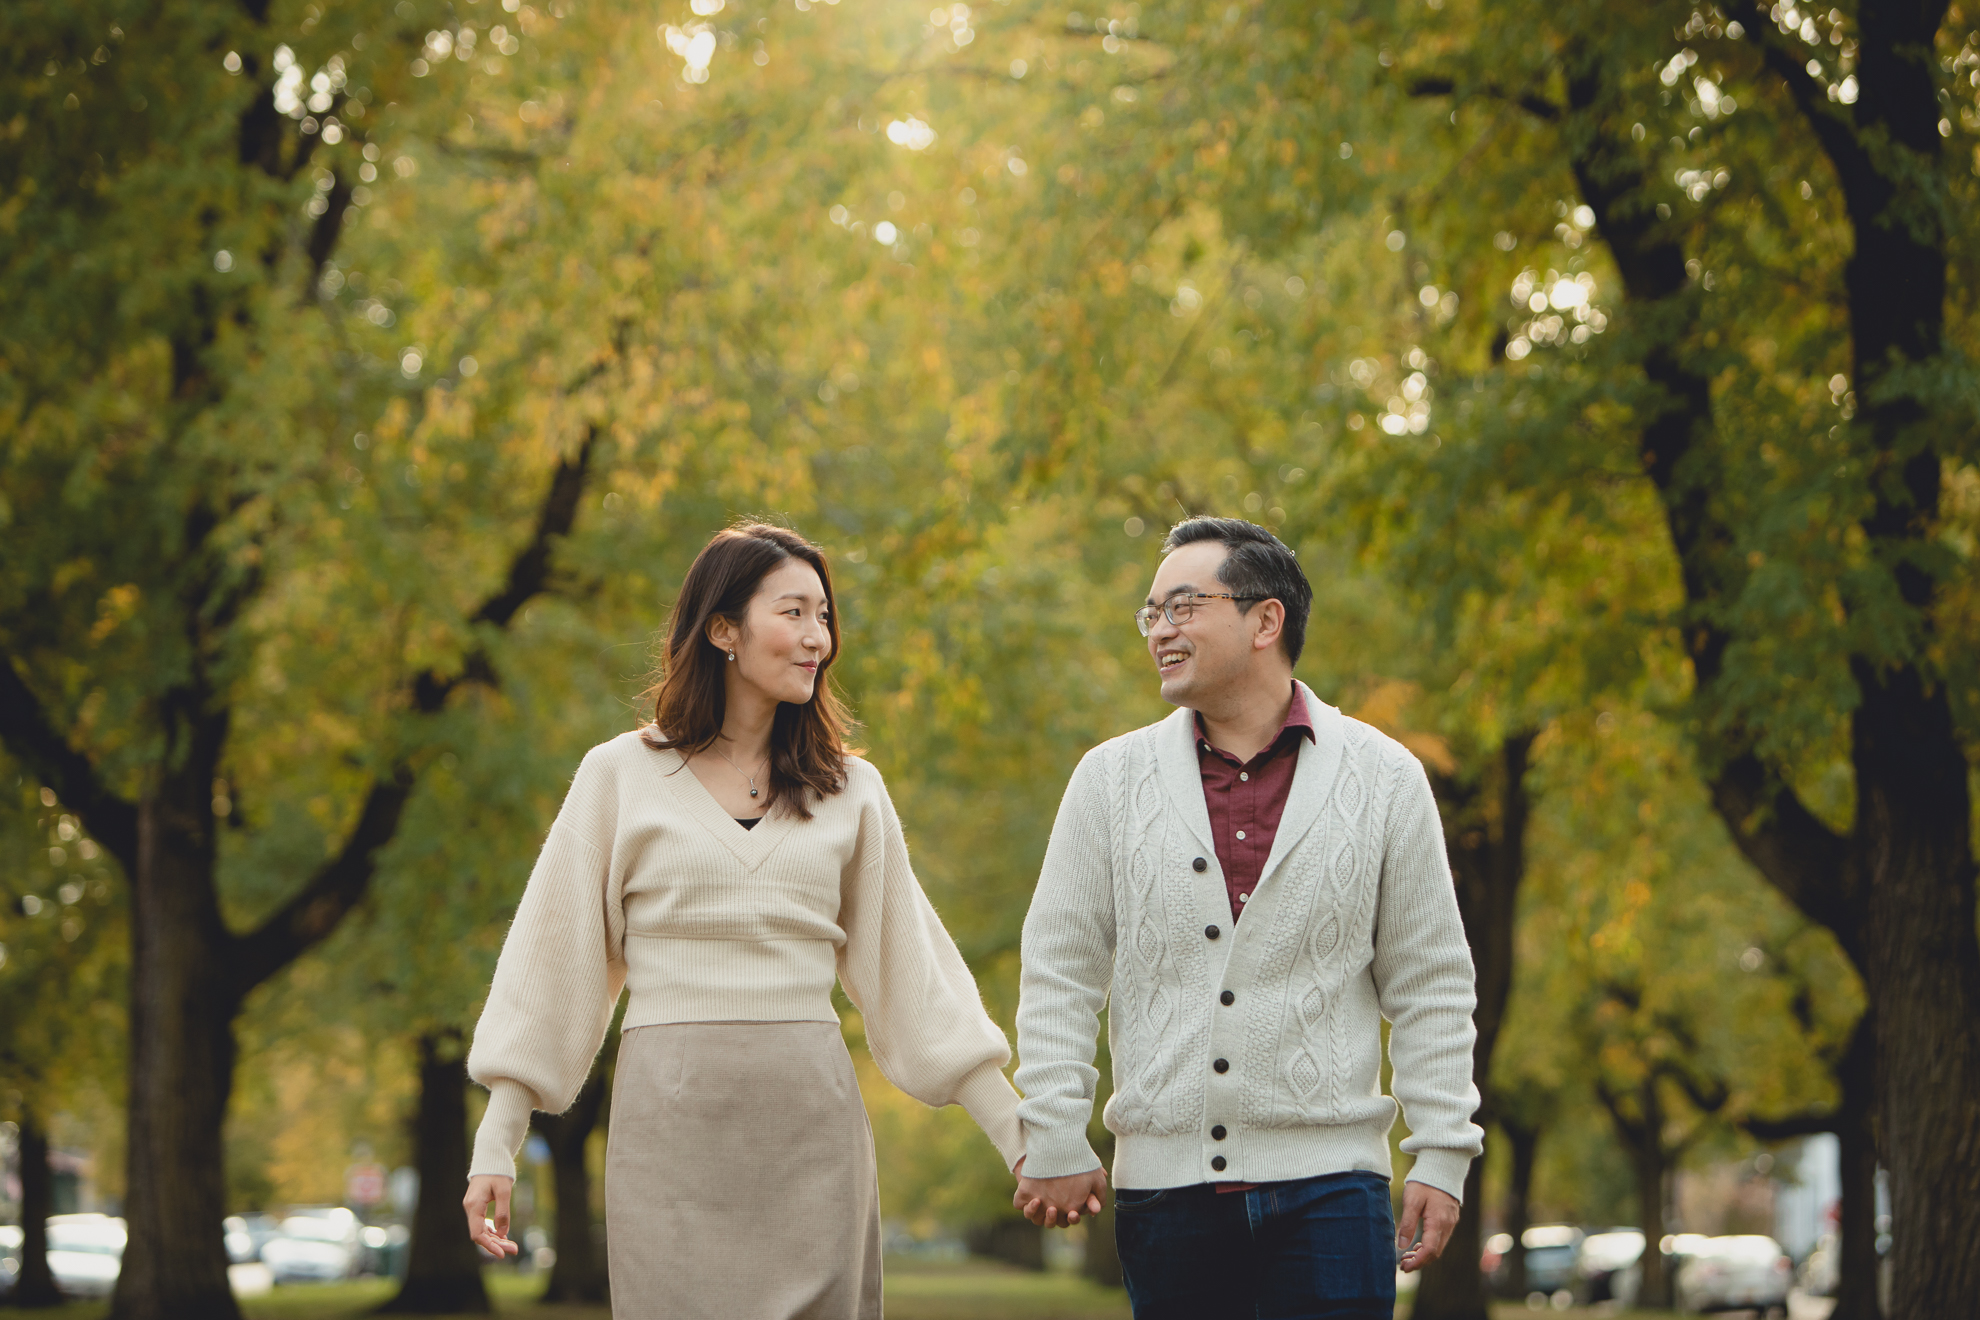 bride and groom walk holding hands during engagement photography session among fall foliage in Bidwell Parkway in Buffalo, NY